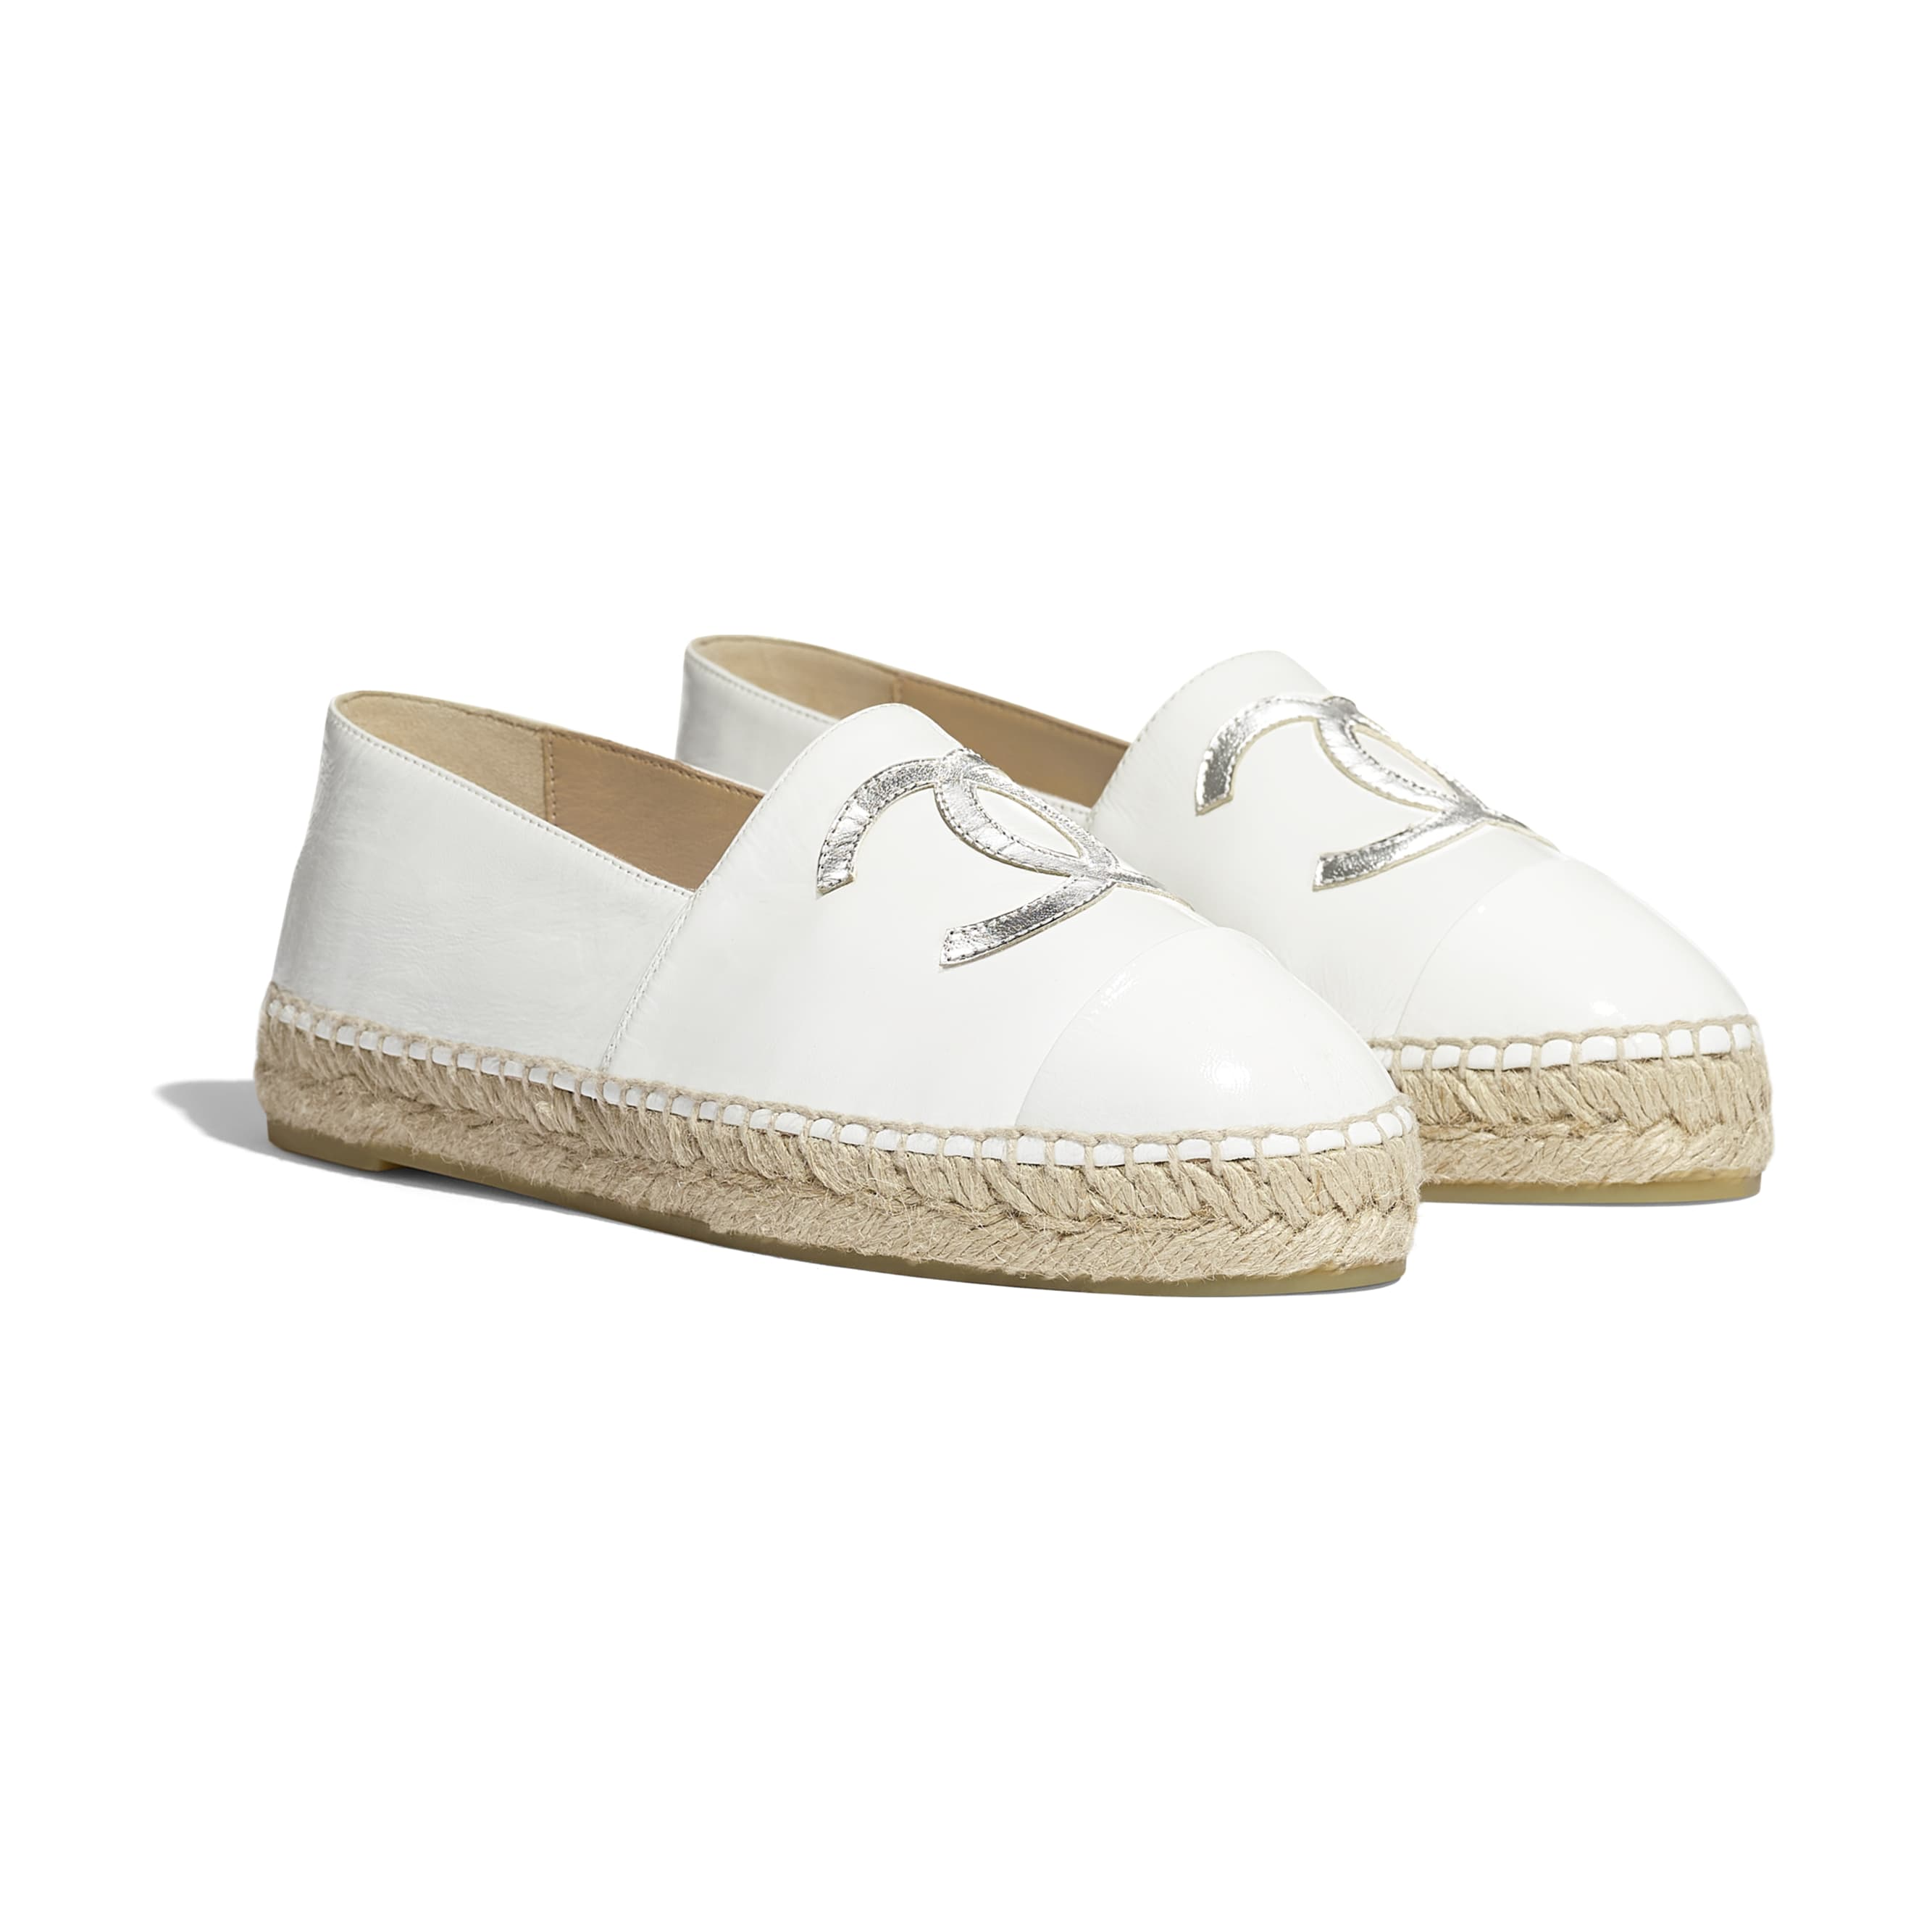 Espadrilles - White & Silver - Patent Calfskin & Metallic Goatskin - Alternative view - see standard sized version